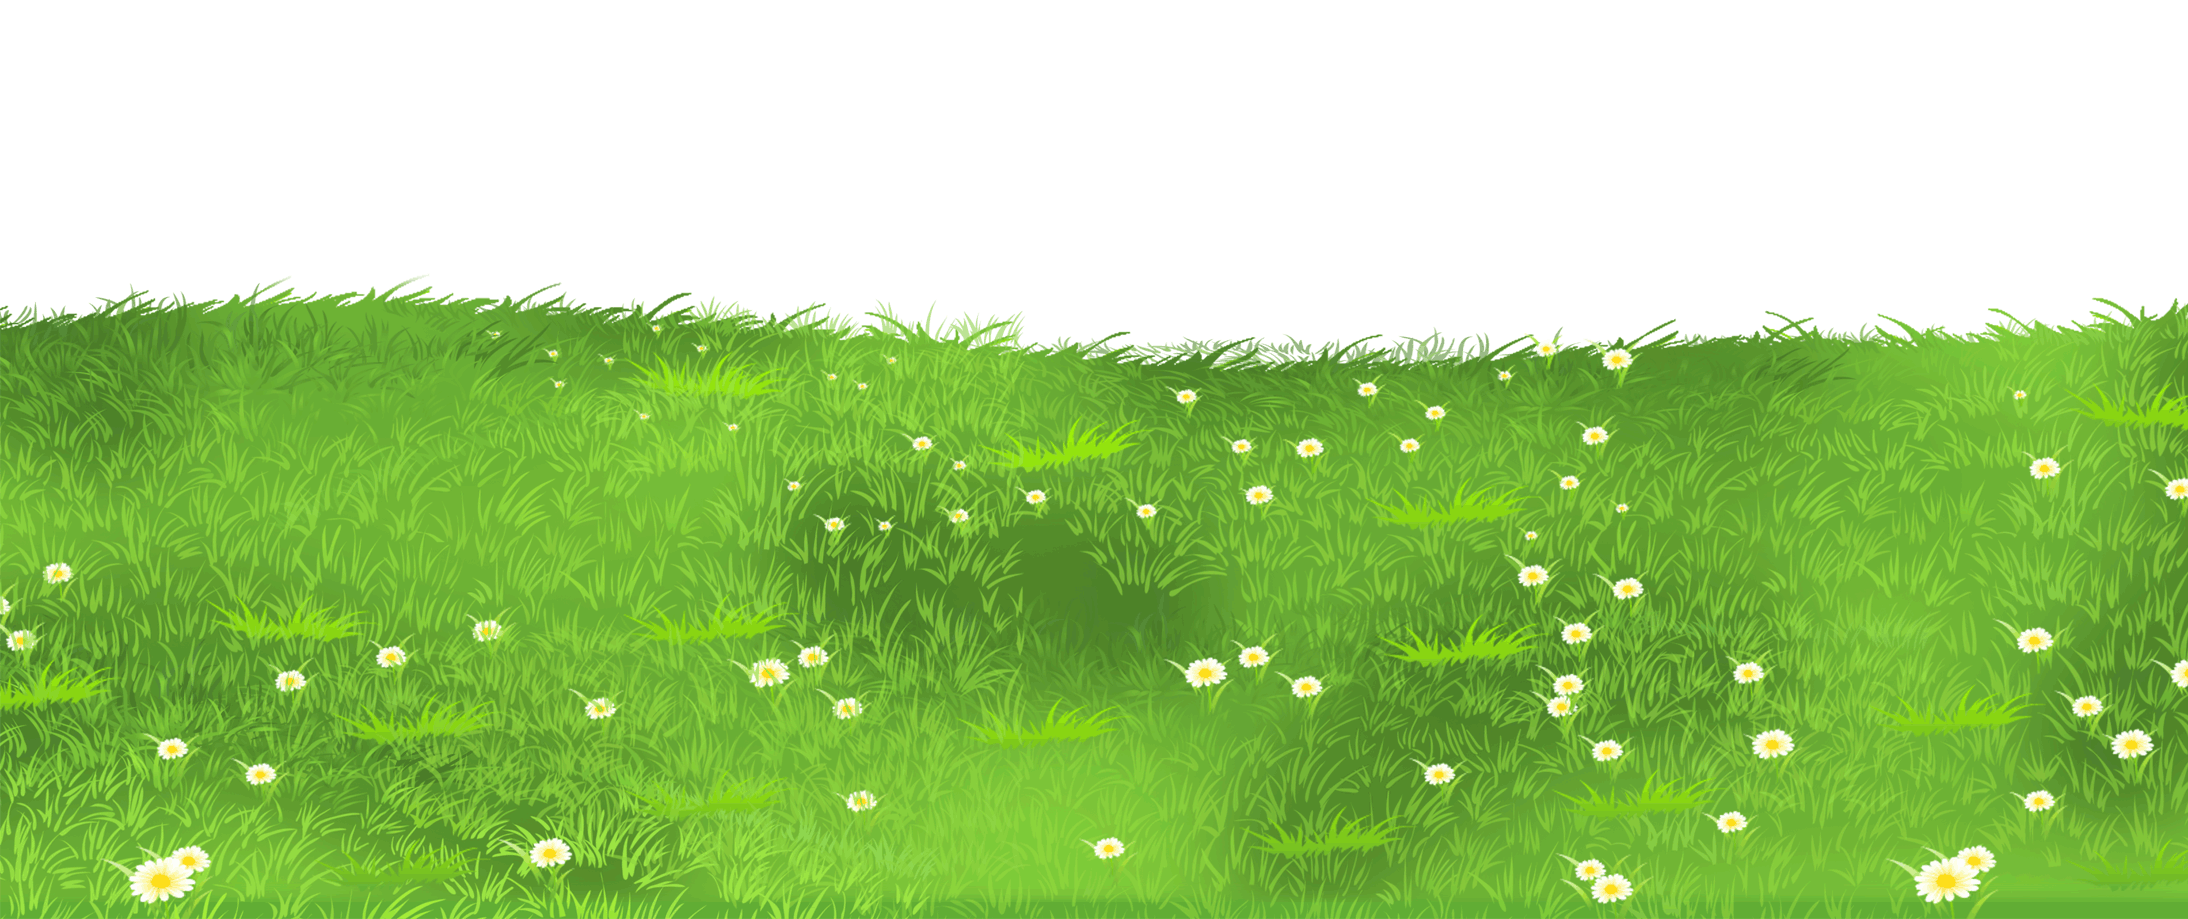 Daisy clipart patch grass. Genarrator huckle muckle by